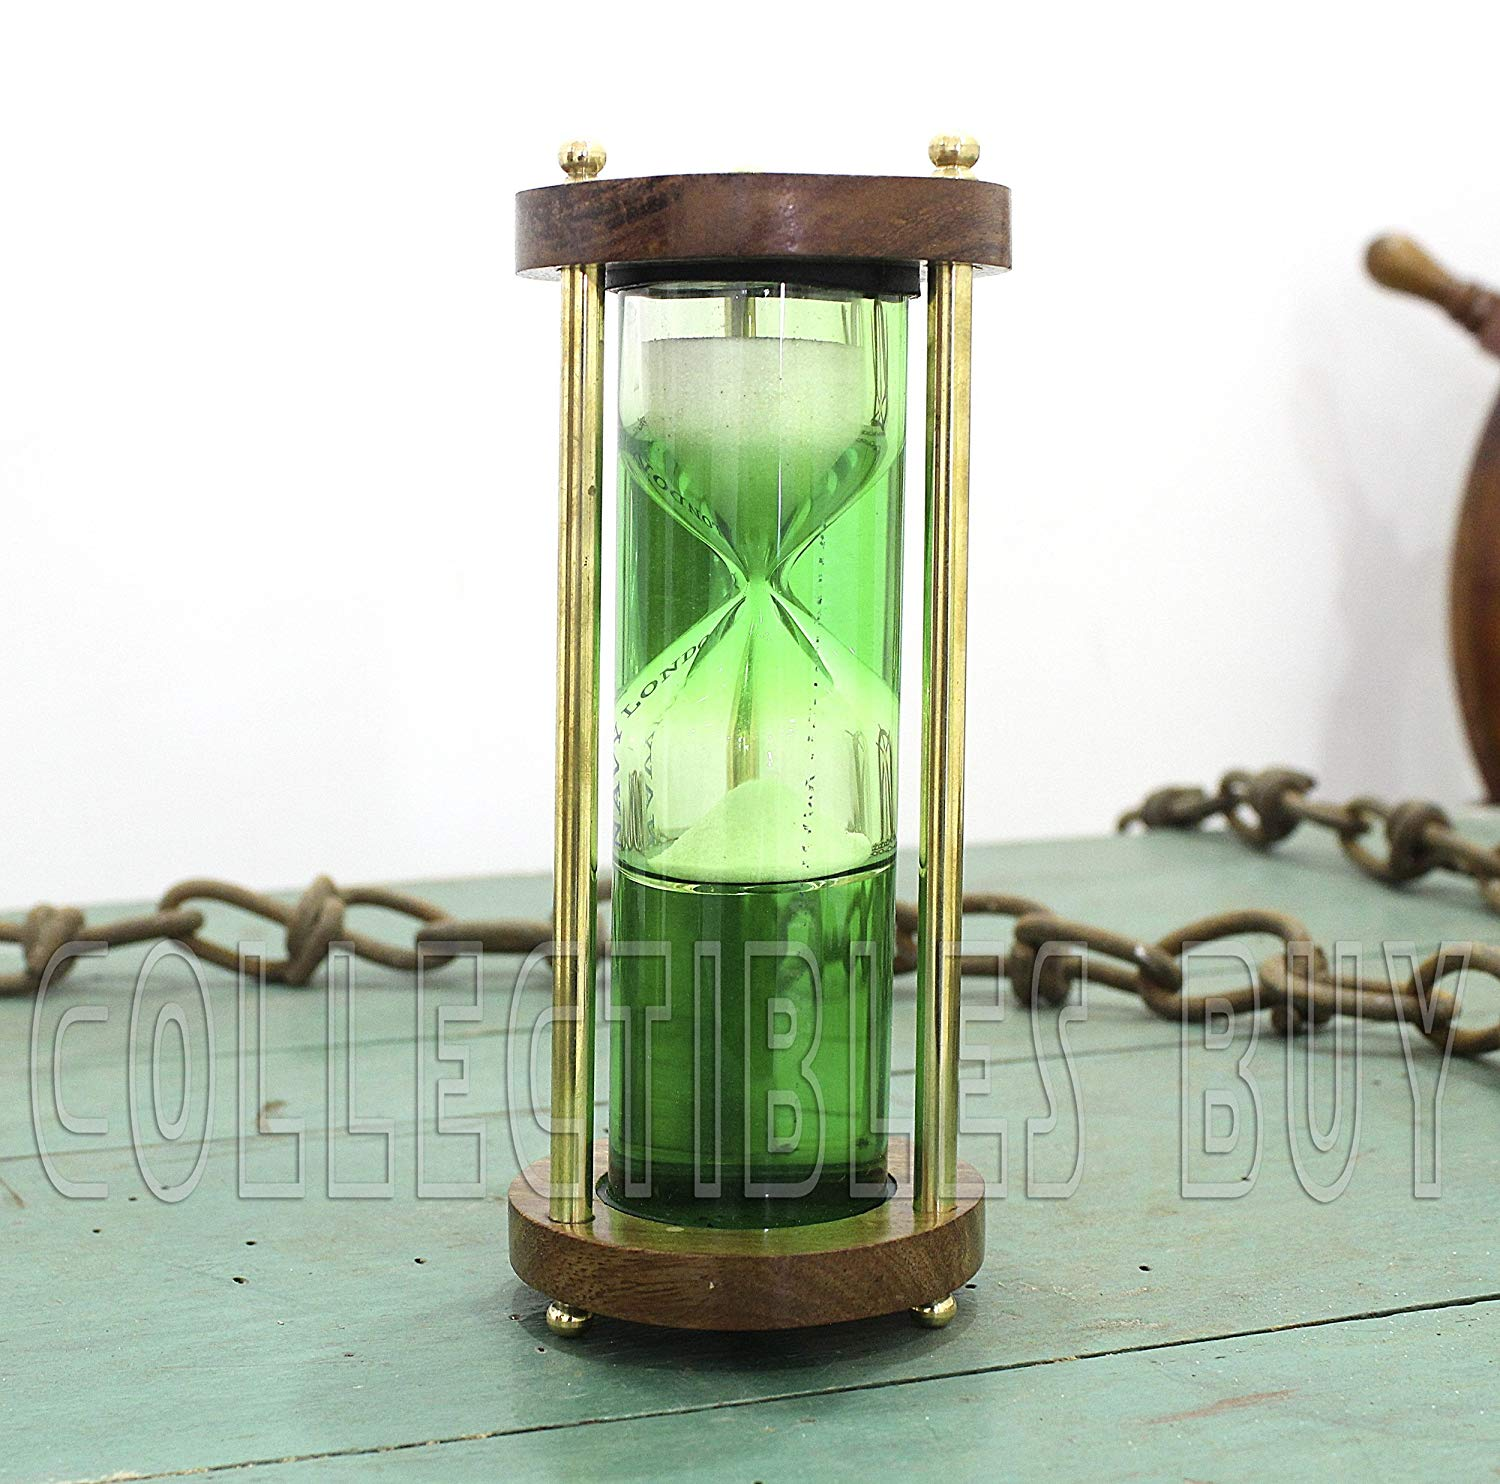 Vintage Hour-Glass Green liquid tube sand timer hour glass vintage watch London 1917